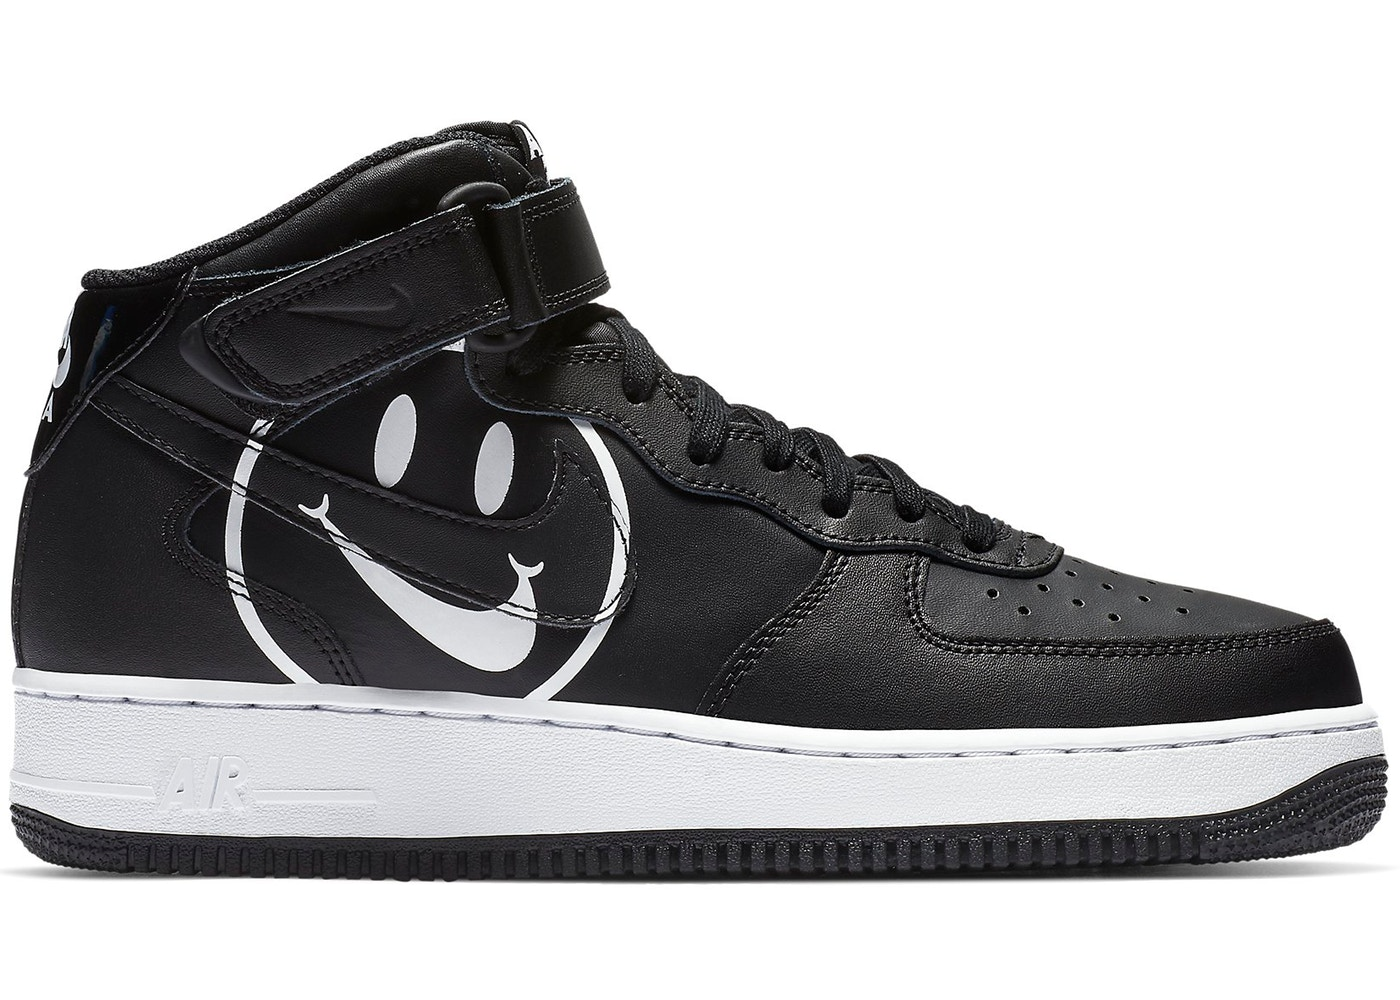 Nike Air Force 1 Mid Have a Nike Day Black